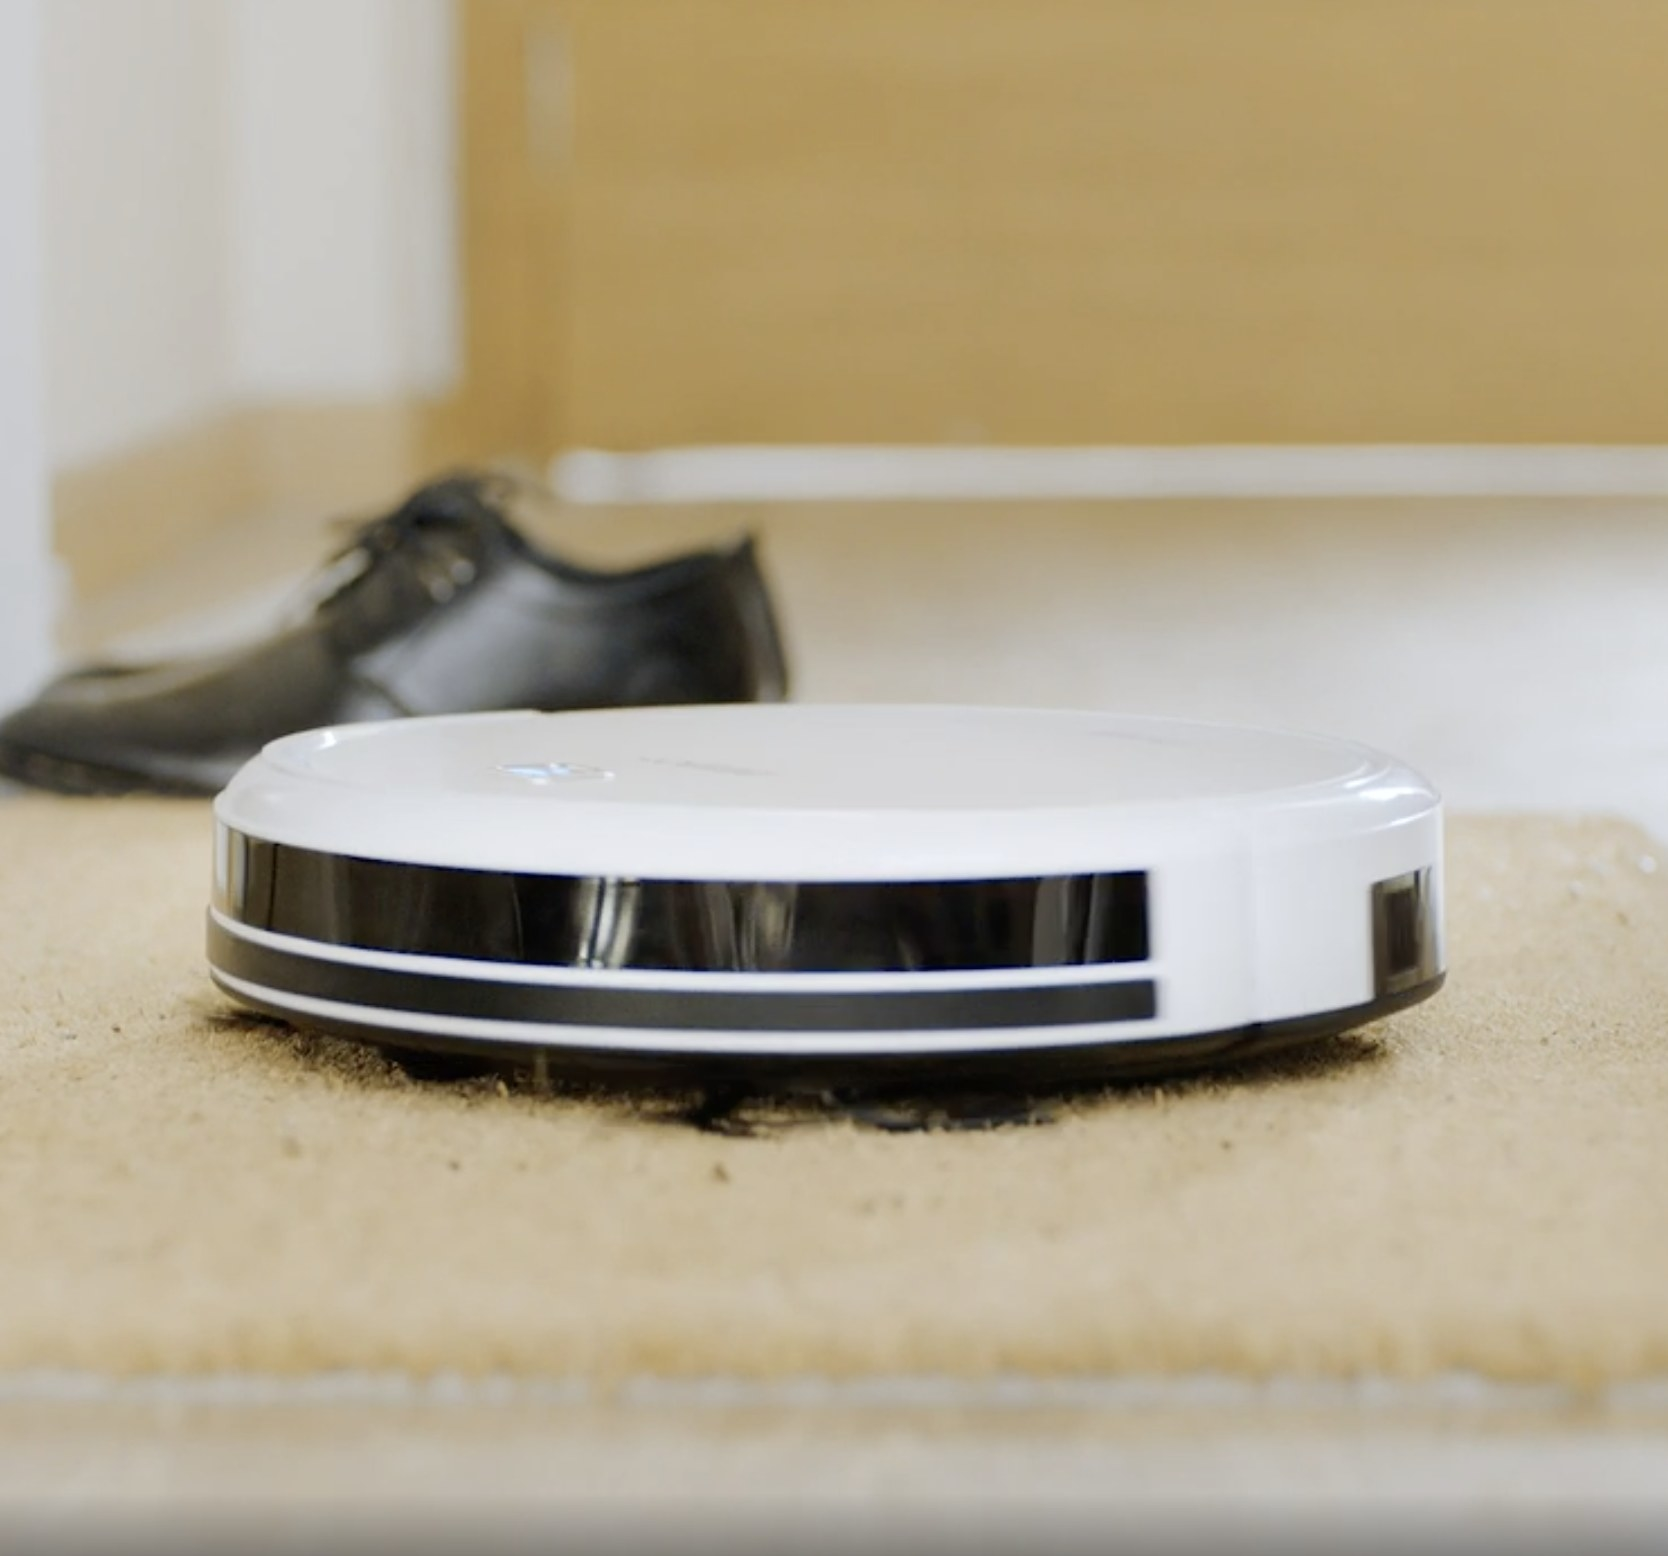 The robotic vacuum on a rug